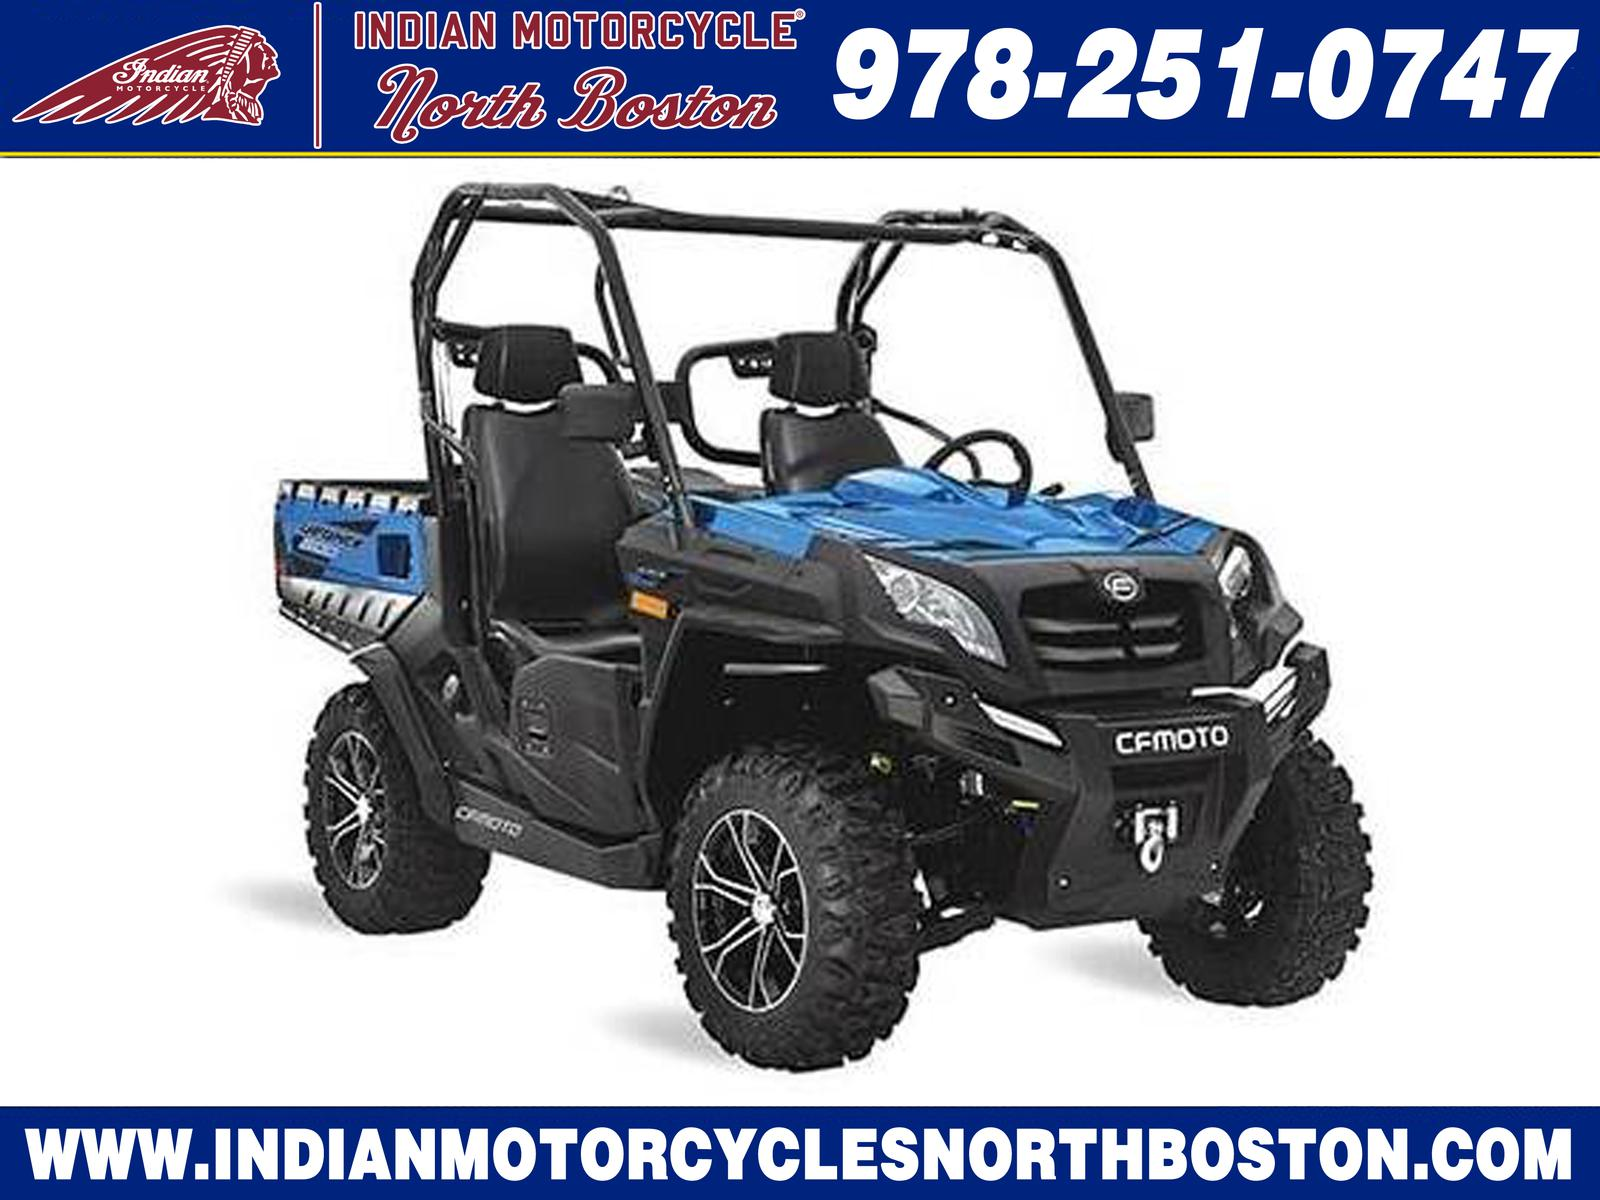 Inventory from CFMOTO Indian Motorcycle of North Boston